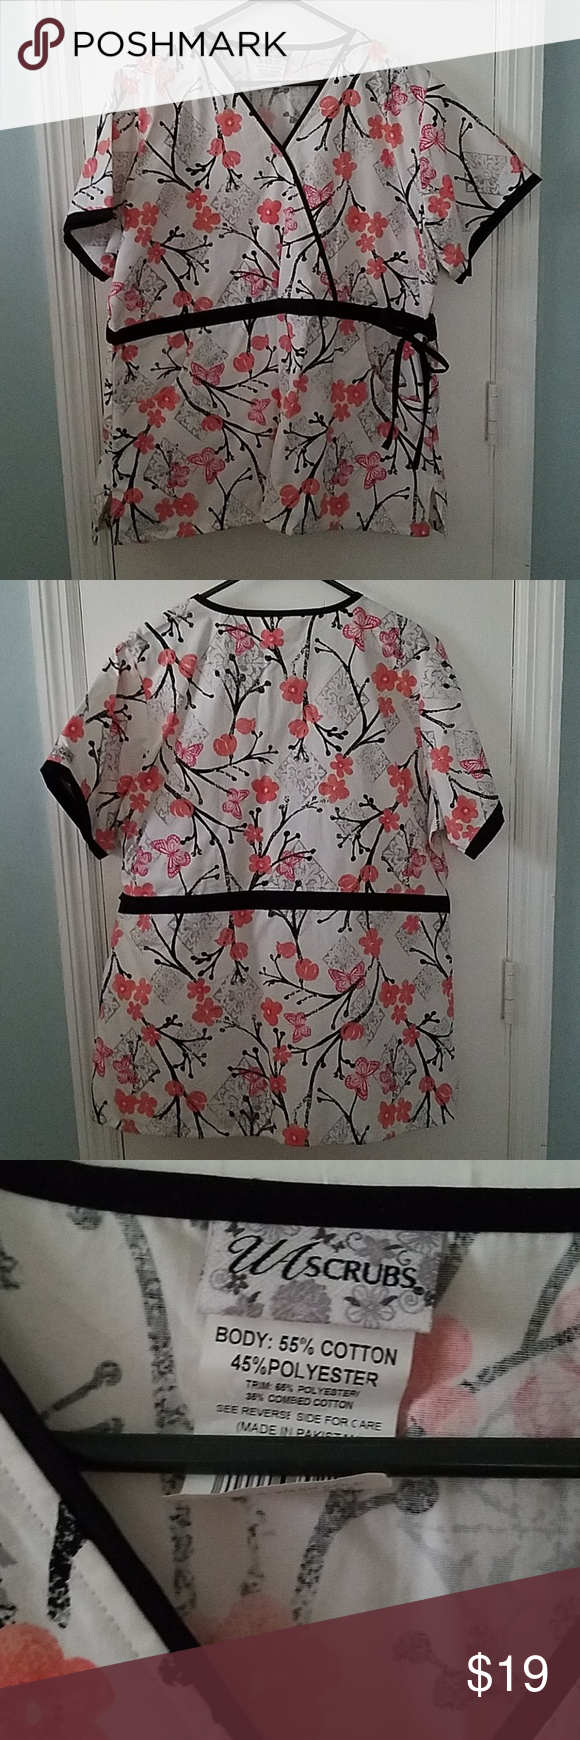 UA Scrubs Cherry Blossoms Top XL 1X NWOT This listing is for a new without tags … 435f8d5b9e546ecbb771d96fd7d3350c